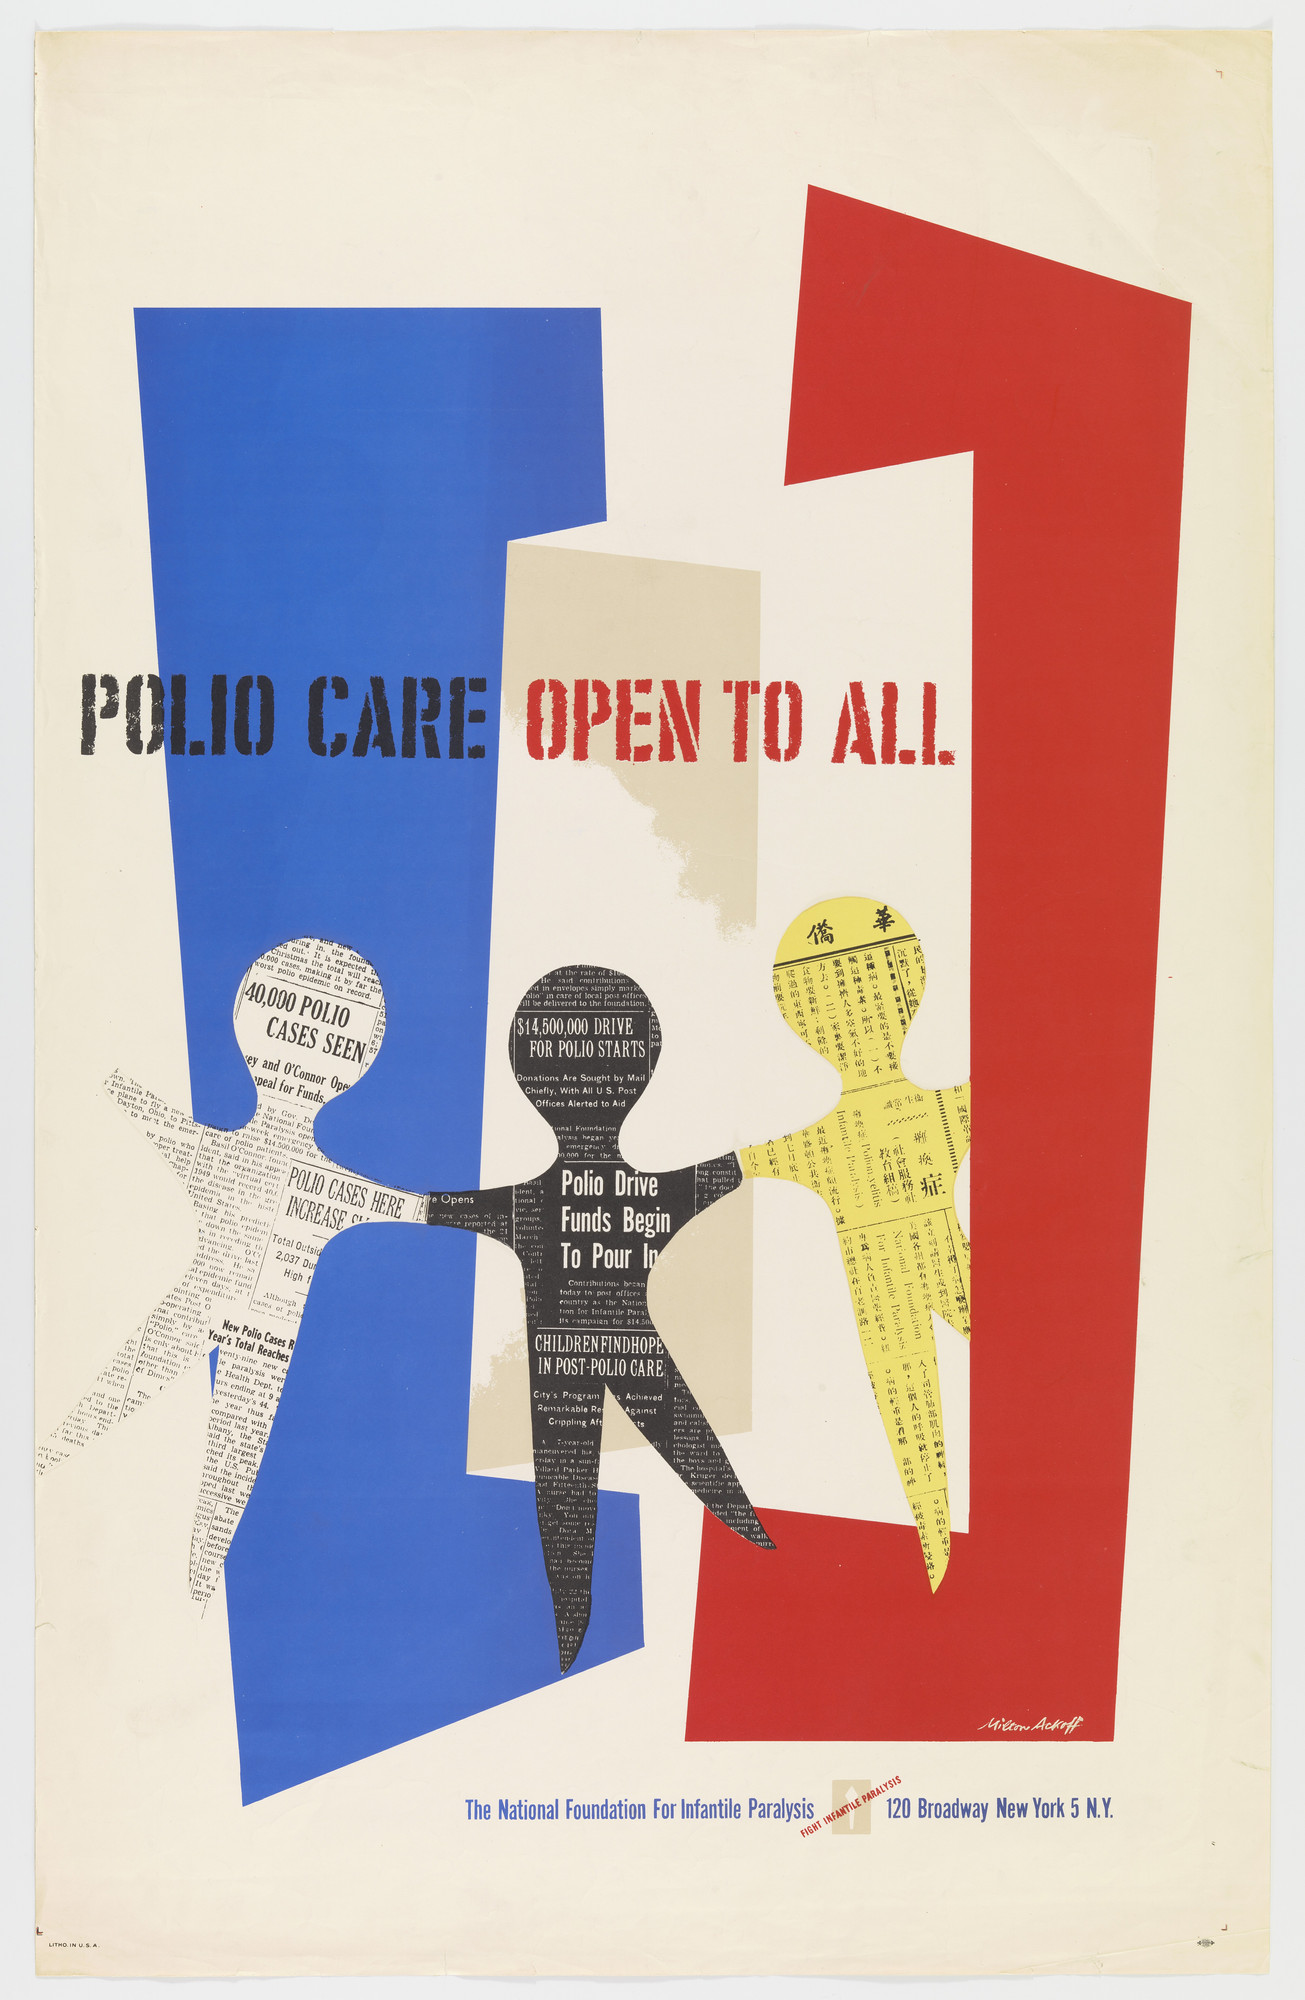 Milton Ackoff. Polio Care Open to All. 1949